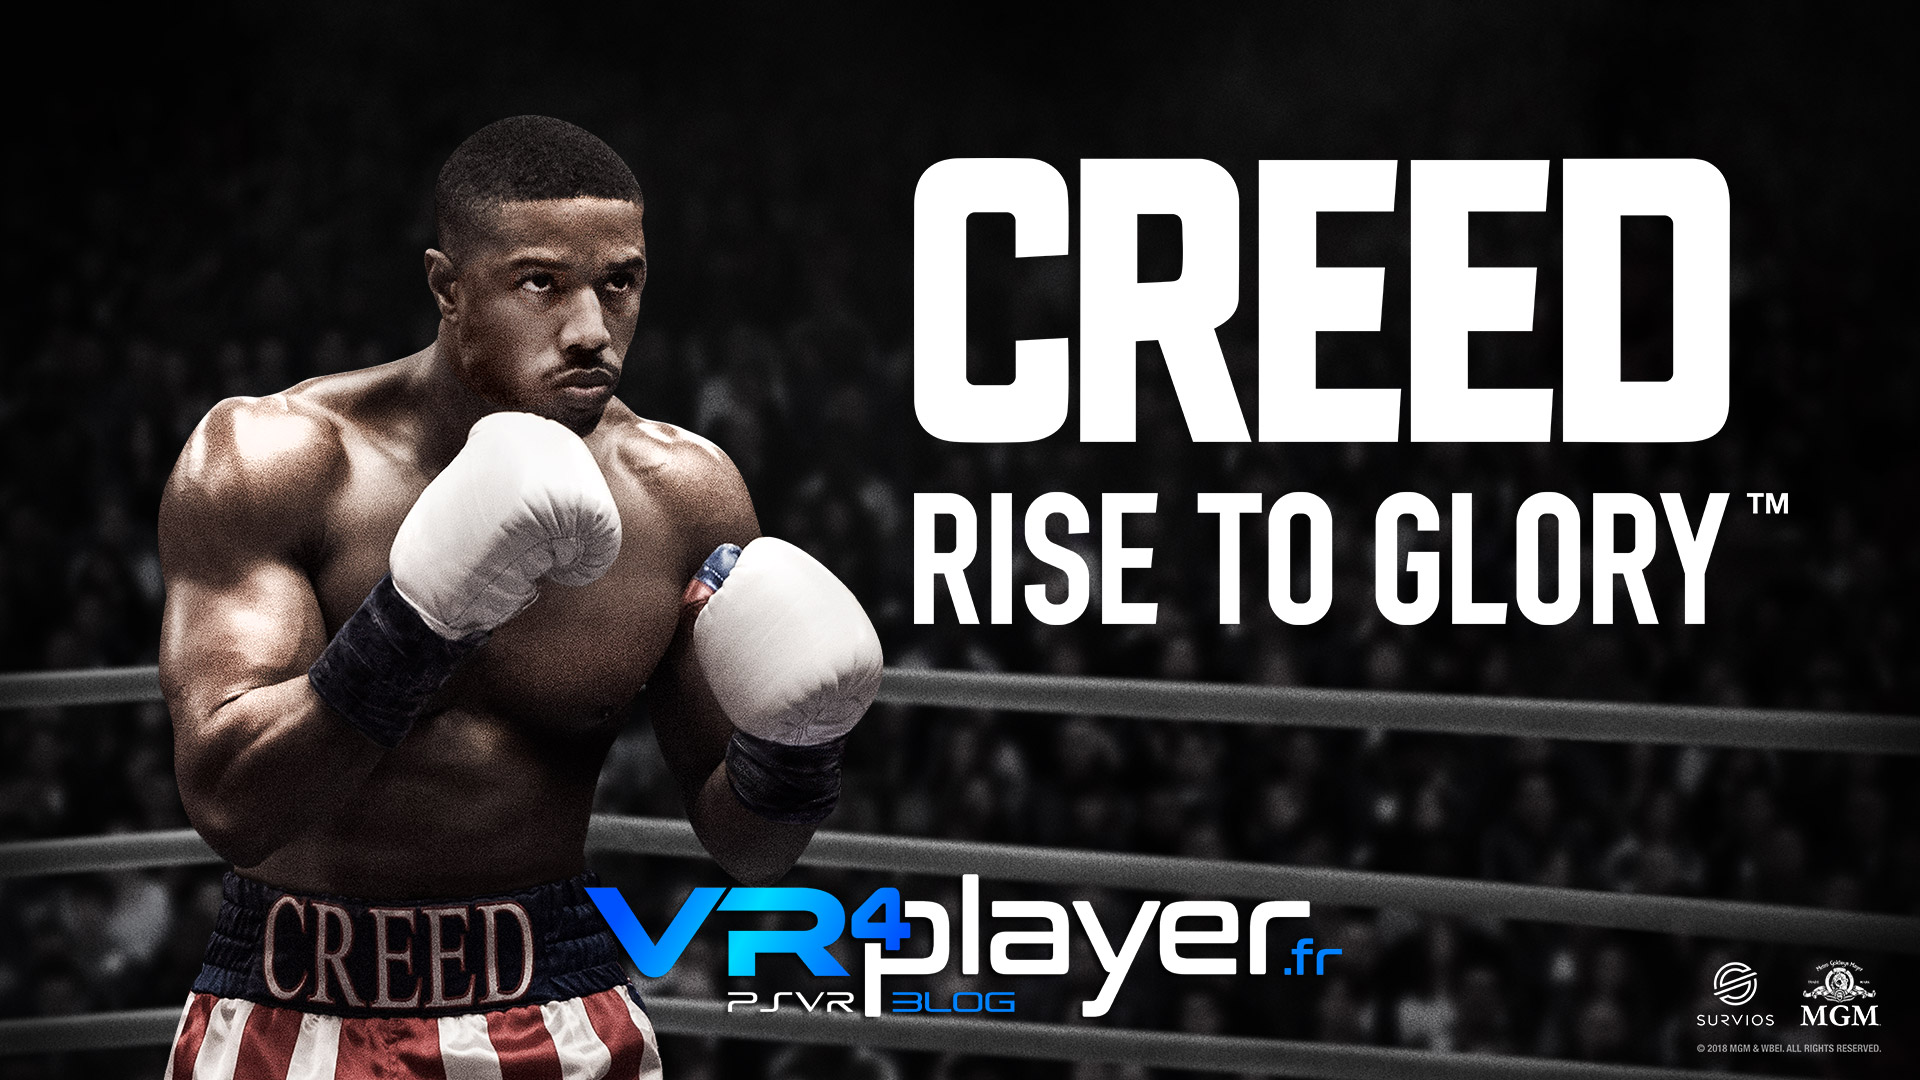 CREED Rise to Glory daté sur PSVR vr4player.fr